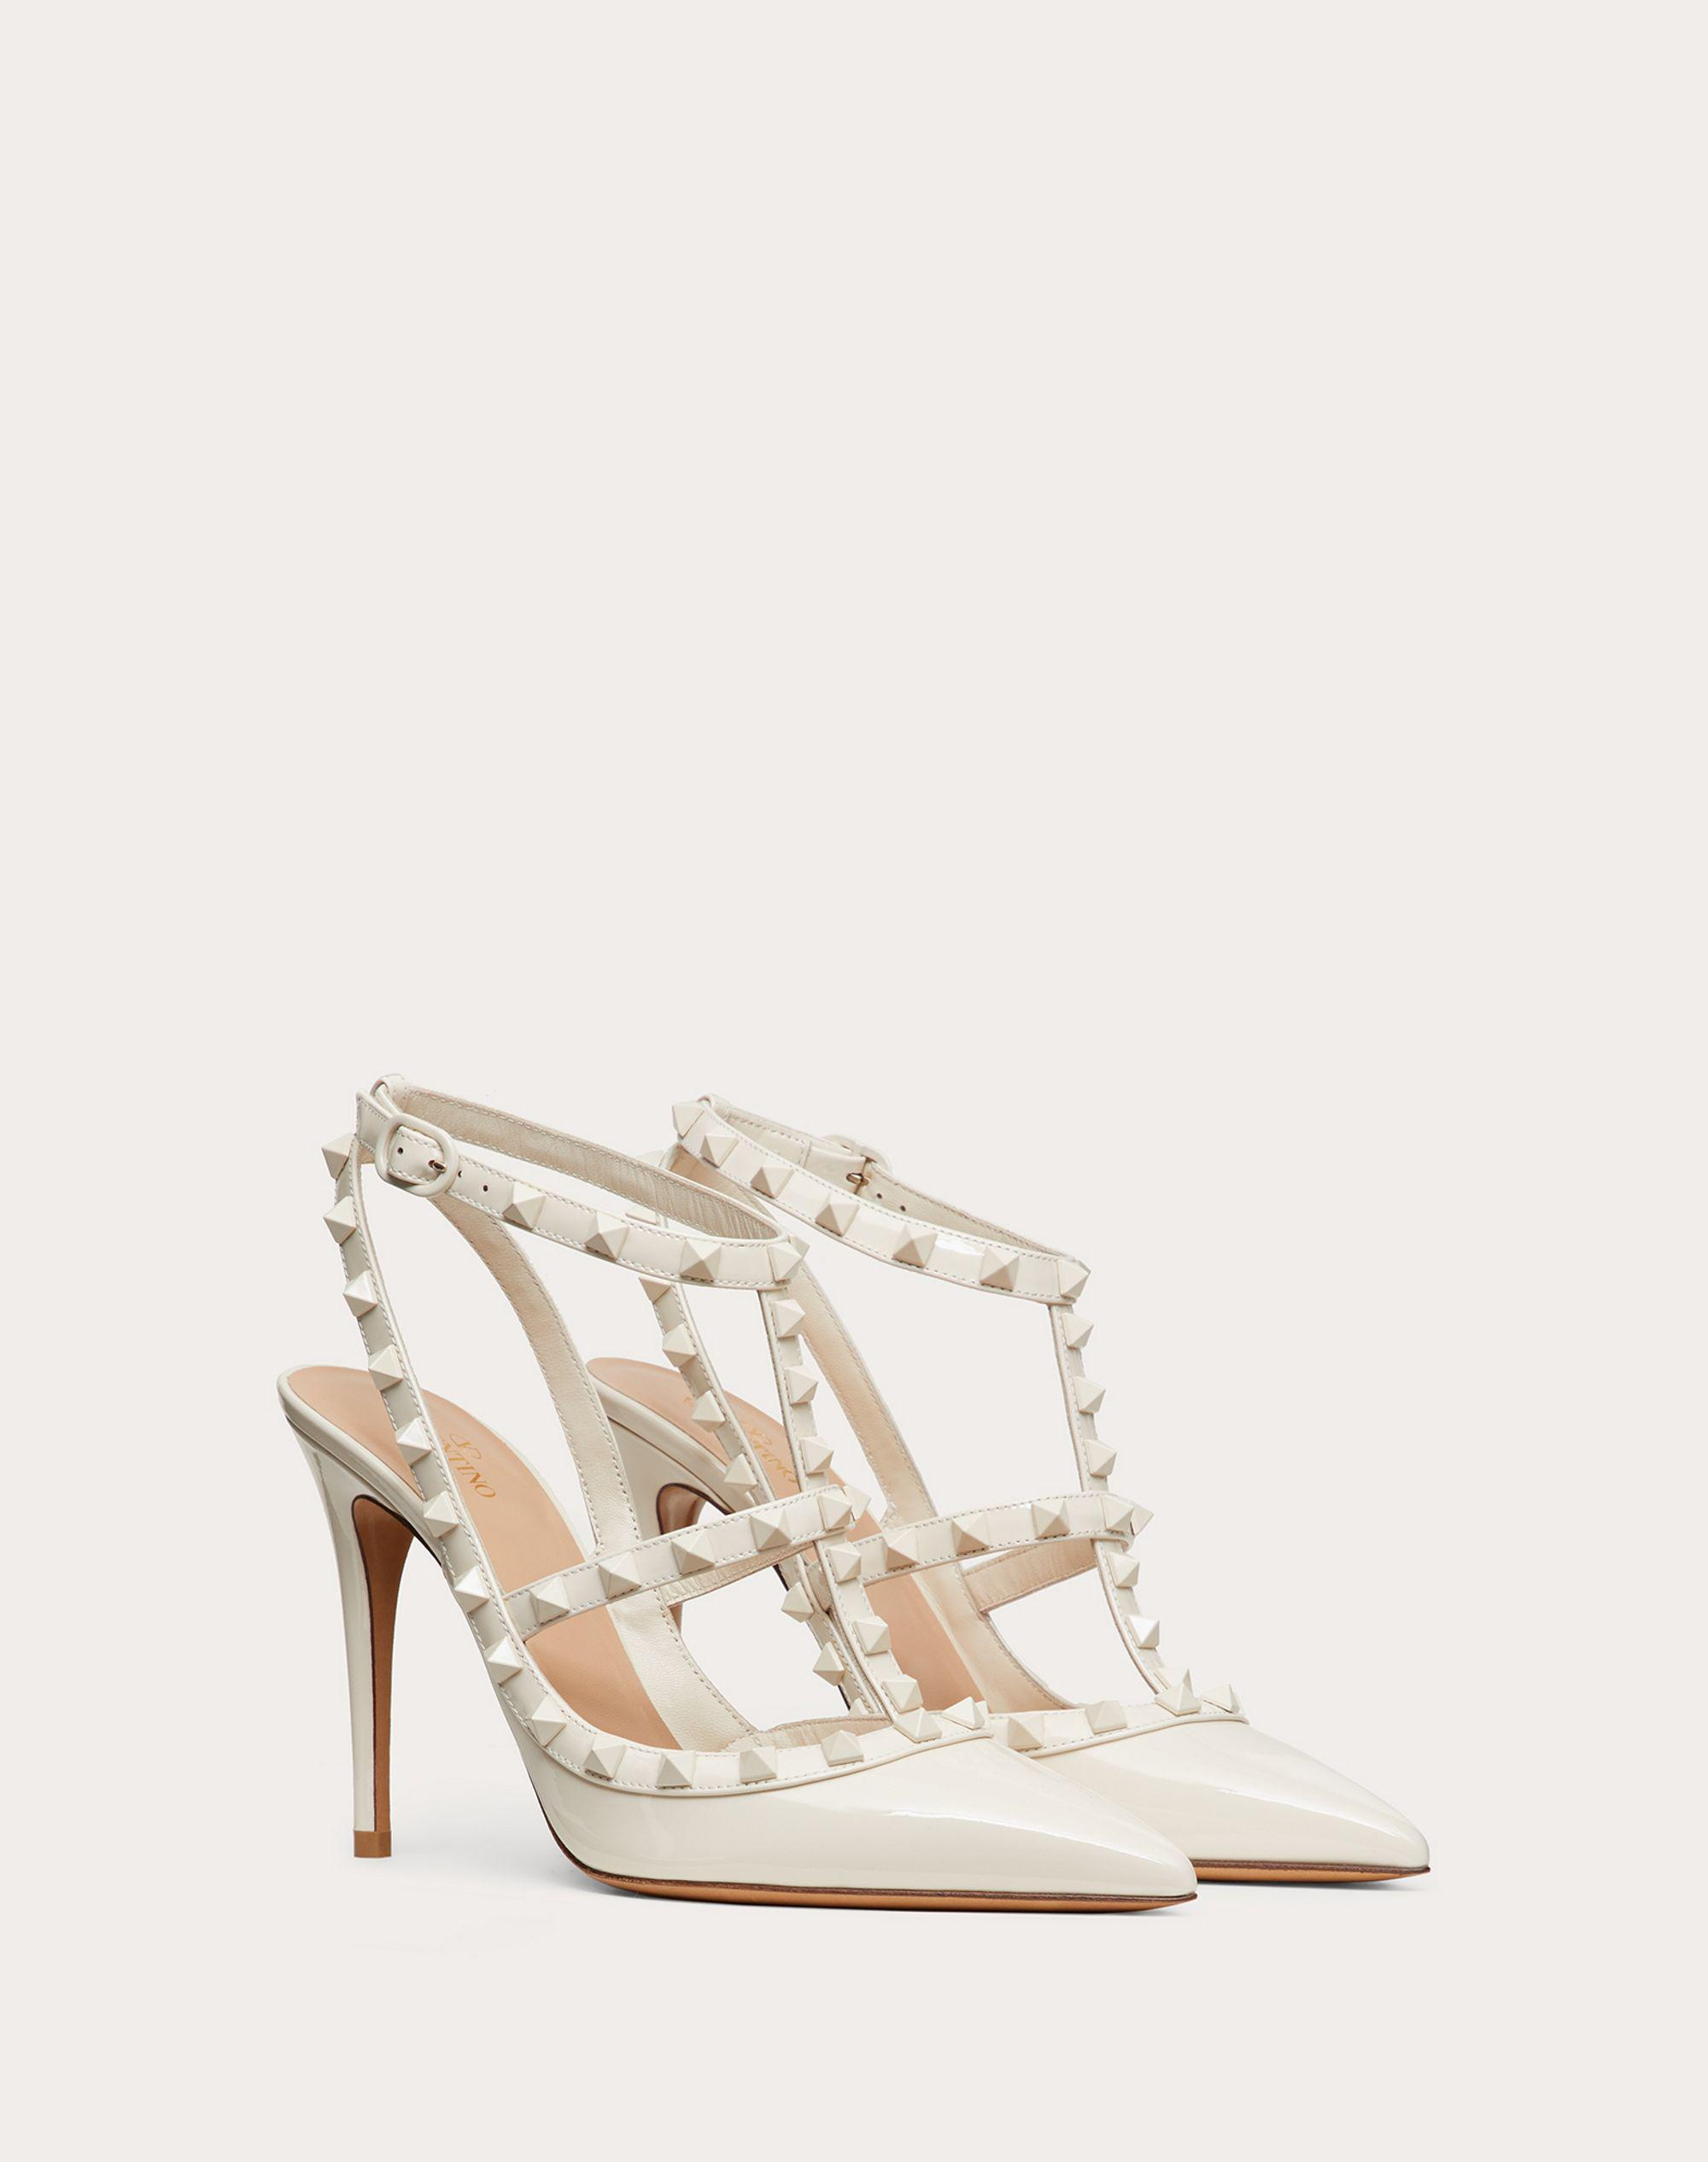 ROCKSTUD ANKLE STRAP PATENT-LEATHER PUMP WITH TONAL STUDS 100 MM 1